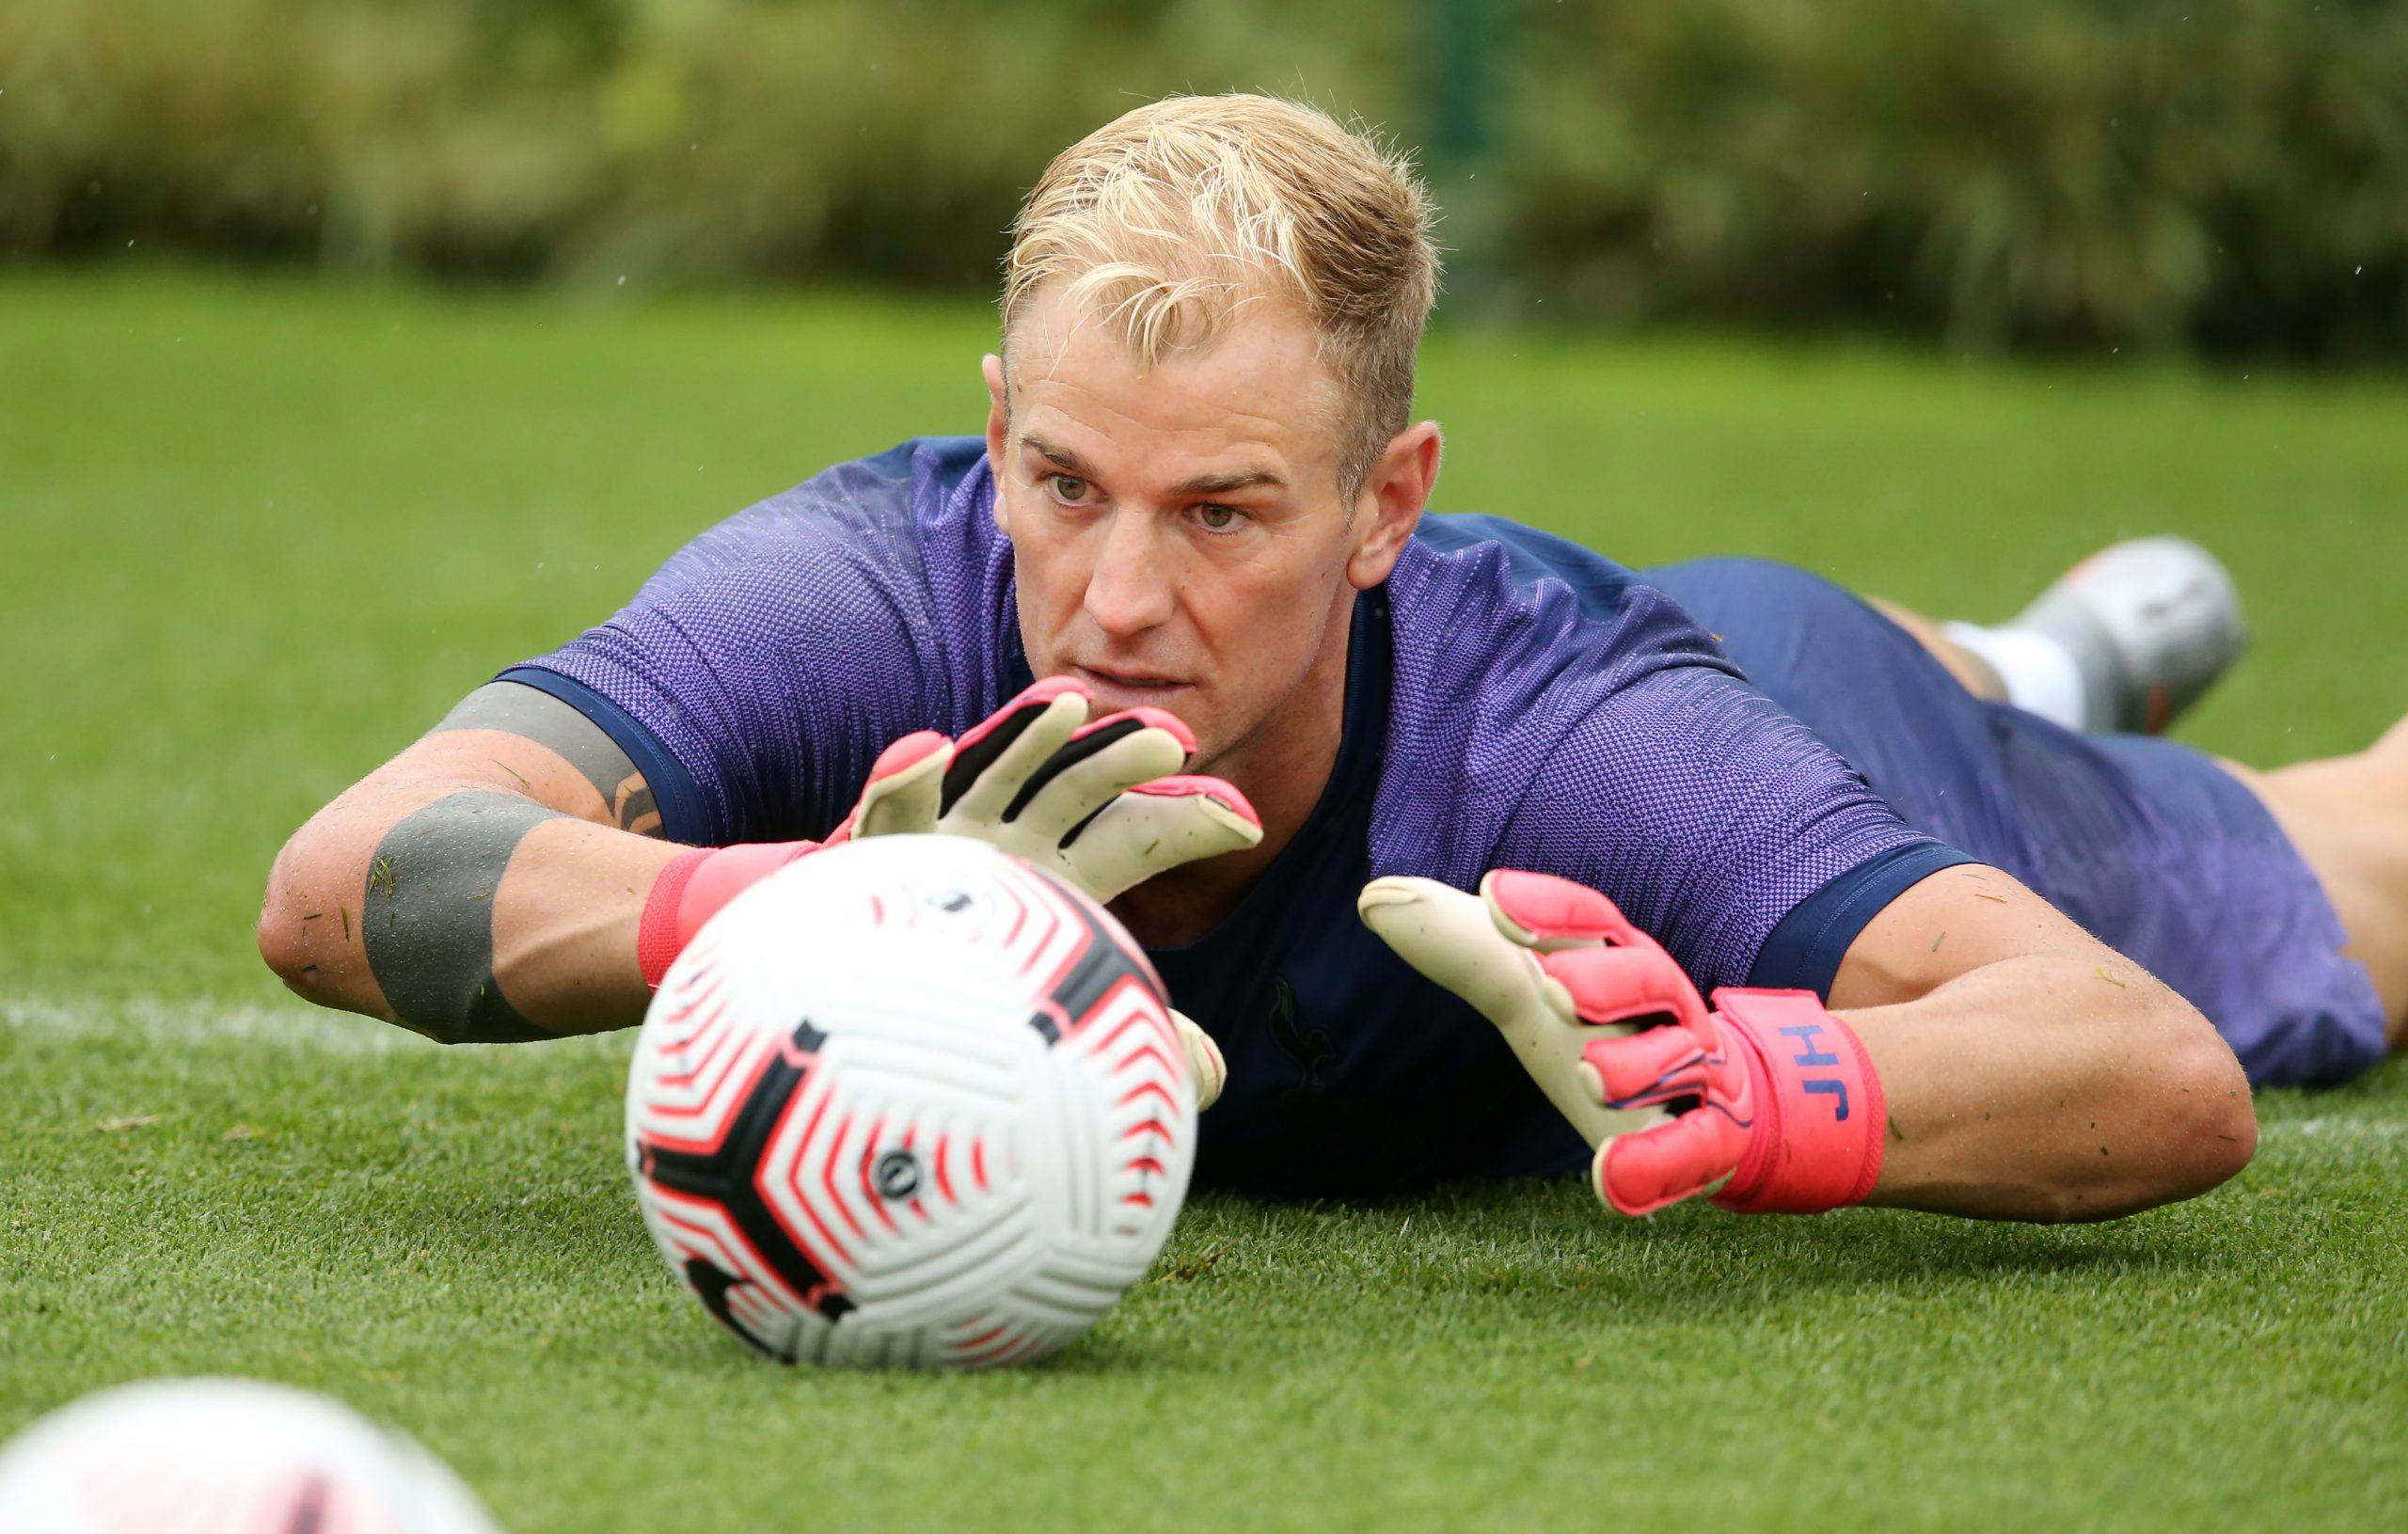 Joe Hart believes Tottenham Hotspur have a special squad